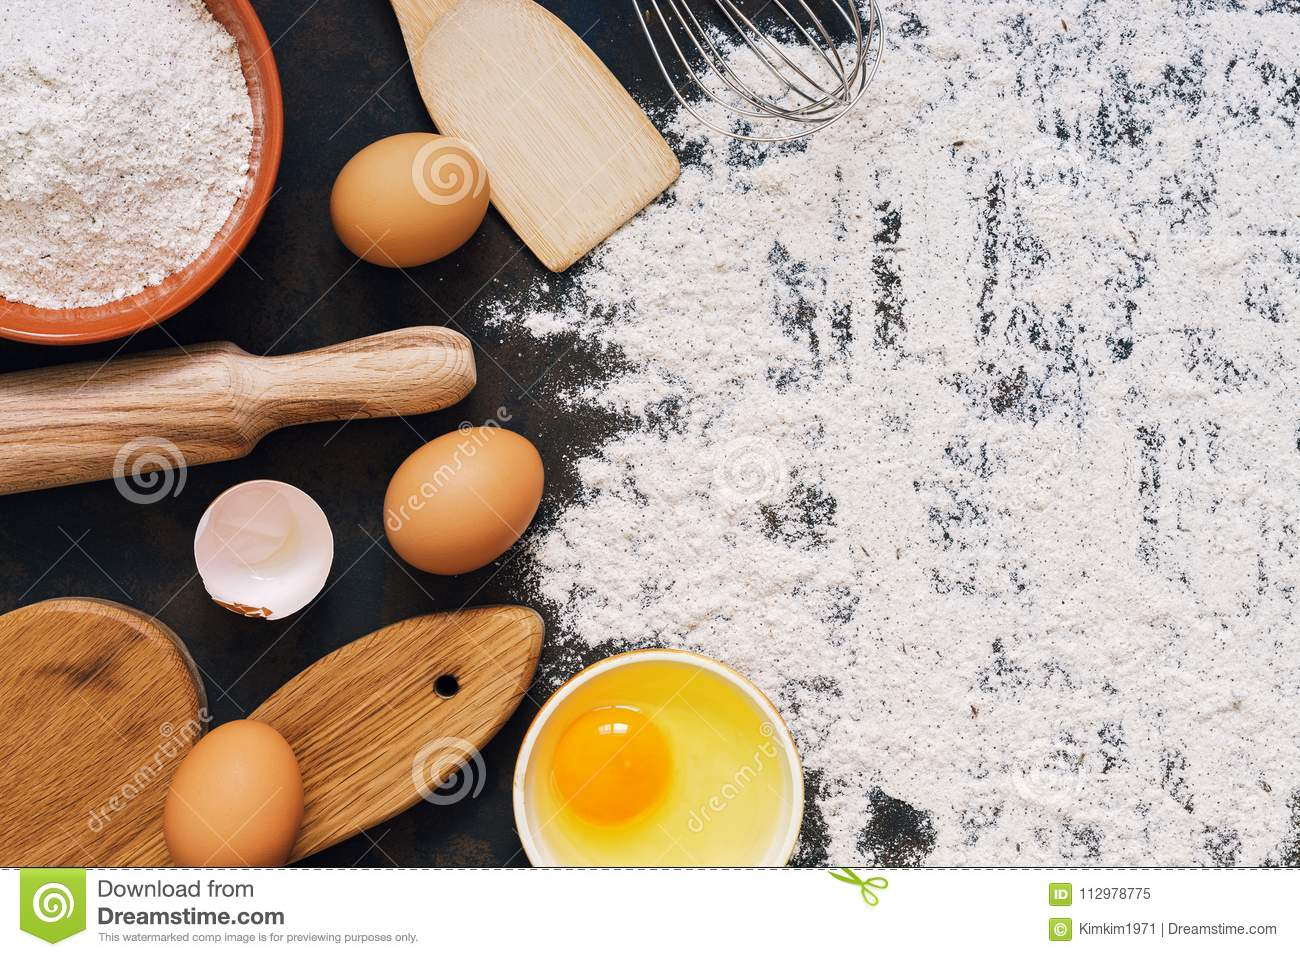 Ingredients for baking rye bread , rye flour, rolling pin, cutting board, eggs, spatula, whisk. Top view, dark rustic background,